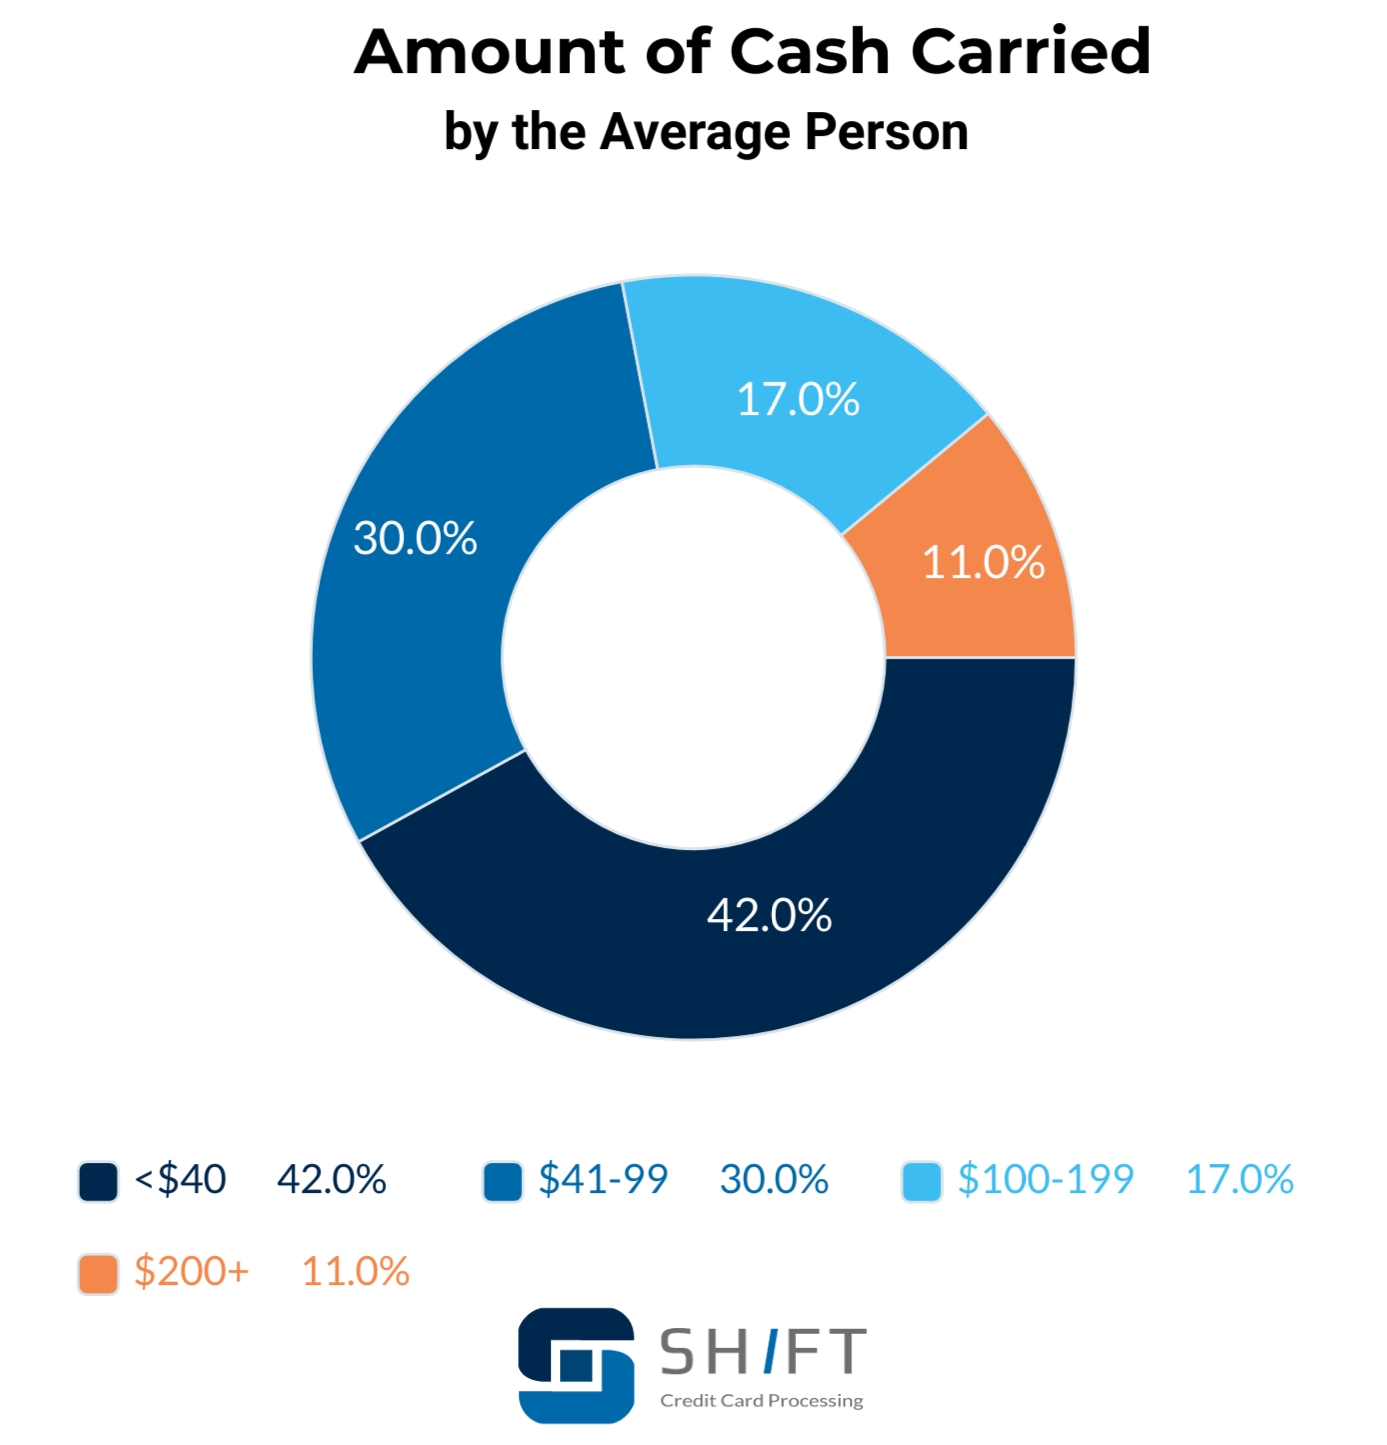 pie chart showing the amount of cash carried by the average person